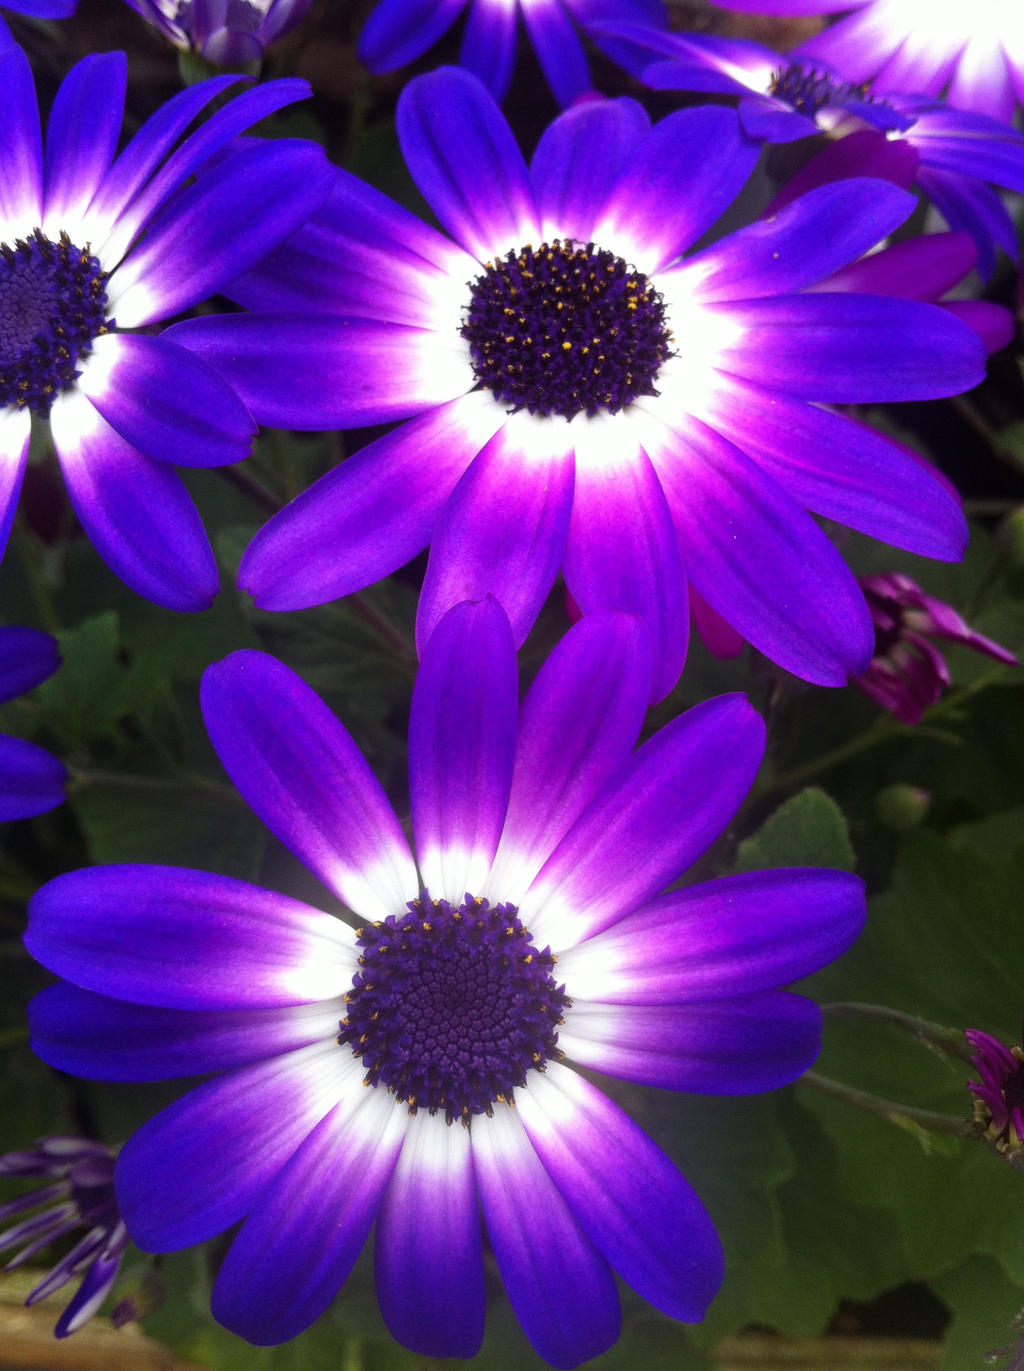 Blue purple white flowers by rdsadams on deviantart blue purple white flowers by rdsadams blue purple white flowers by rdsadams mightylinksfo